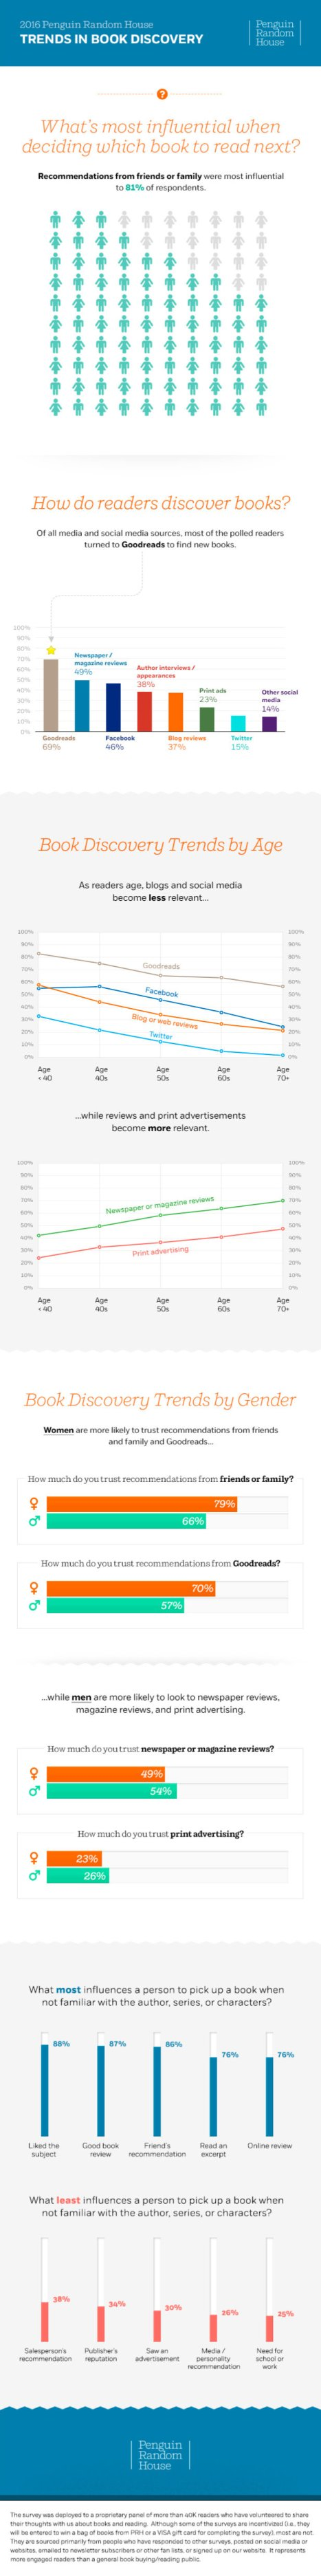 How-do-readers-discover-books-full-infographic